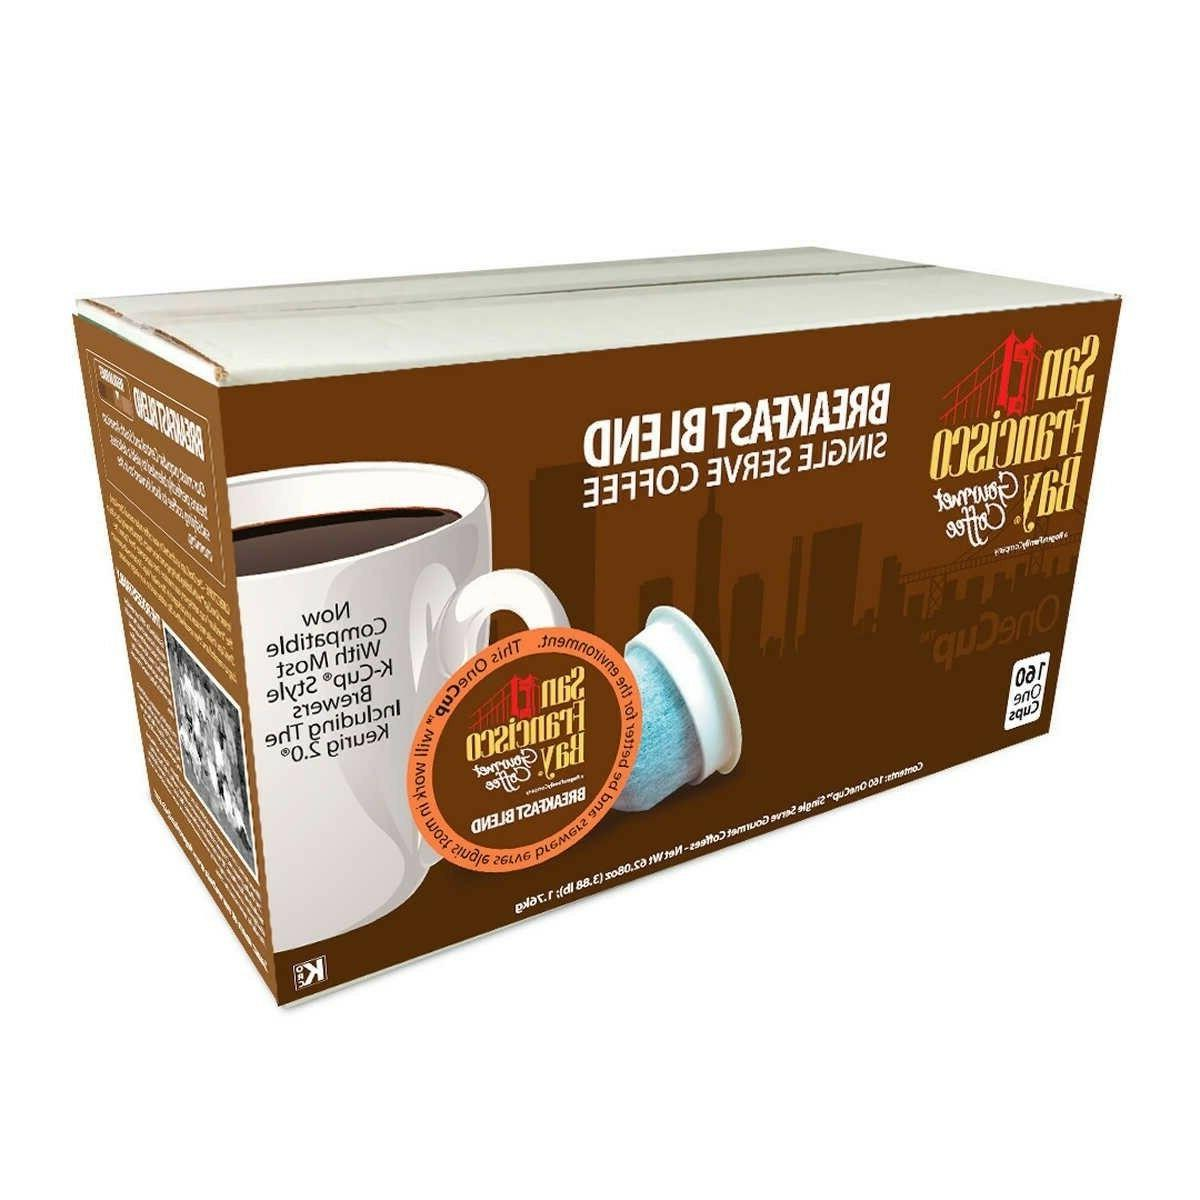 San Francisco Bay Coffee, OneCup Single Serve Cups 160 k cup